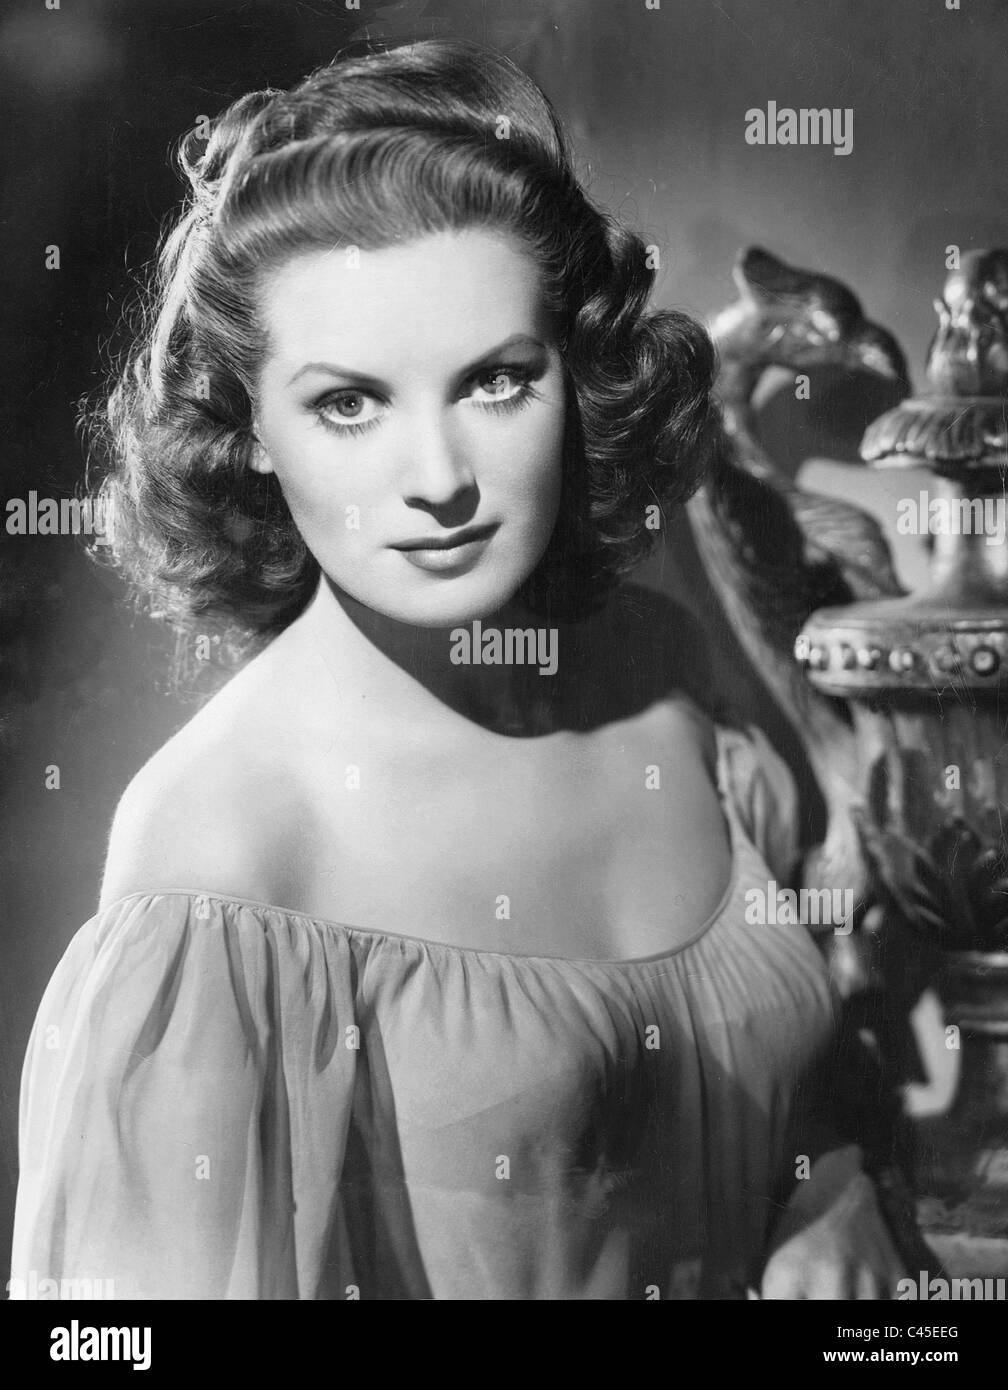 Forum on this topic: Hilda Simms, maureen-ohara/